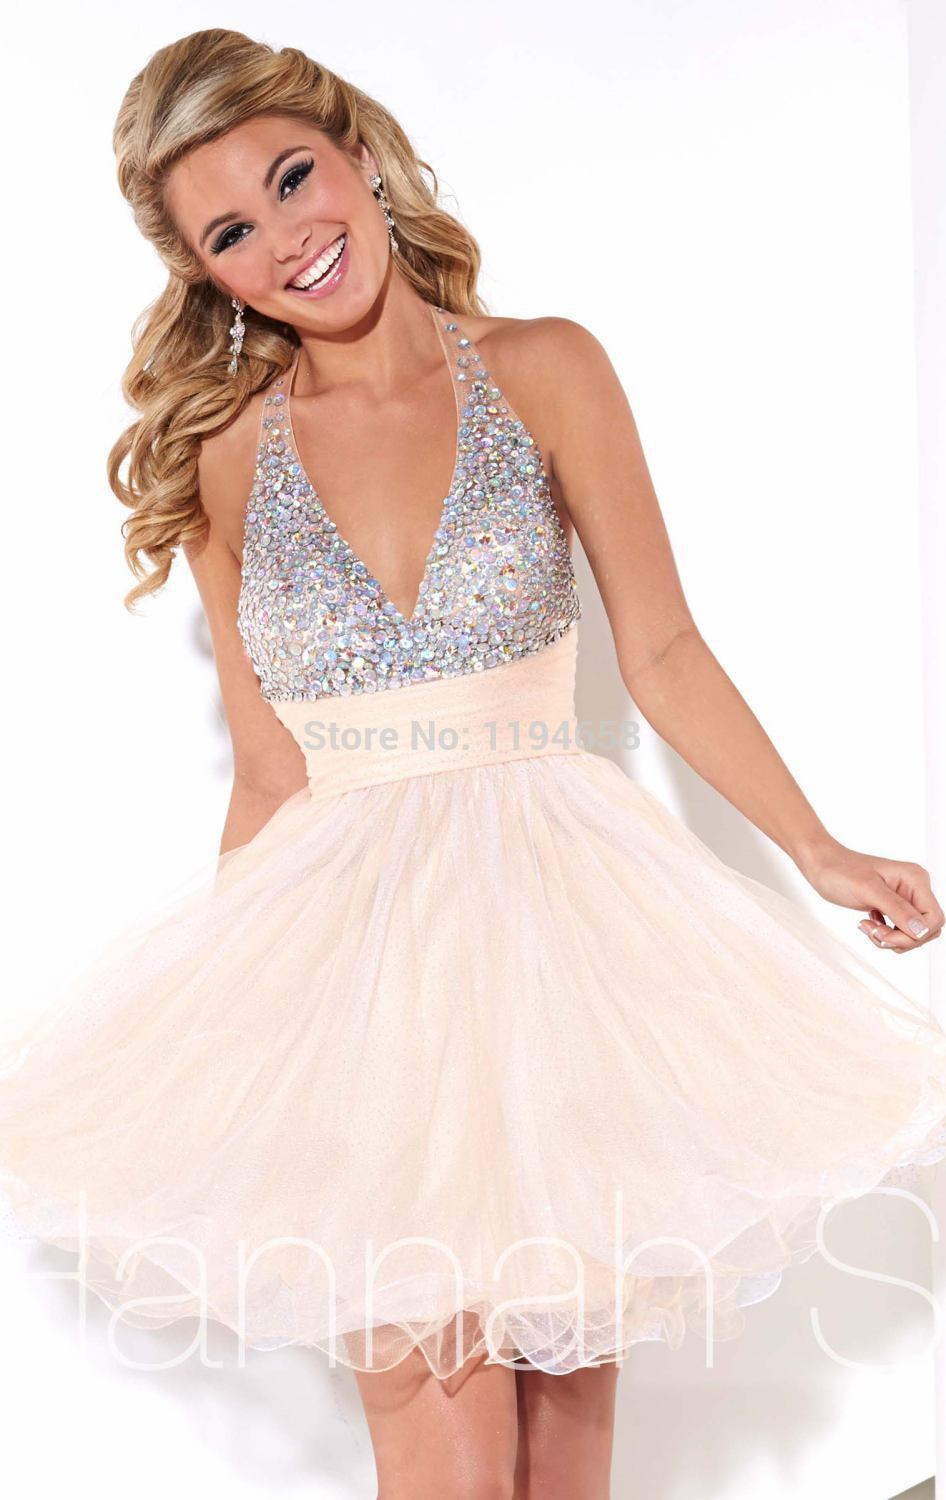 679a0f83ab88 Get Quotations · 2014 Sexy Halter Crystal Homecoming Dresses Crystal Mini  Tulle Party Short Prom Dress New Design For